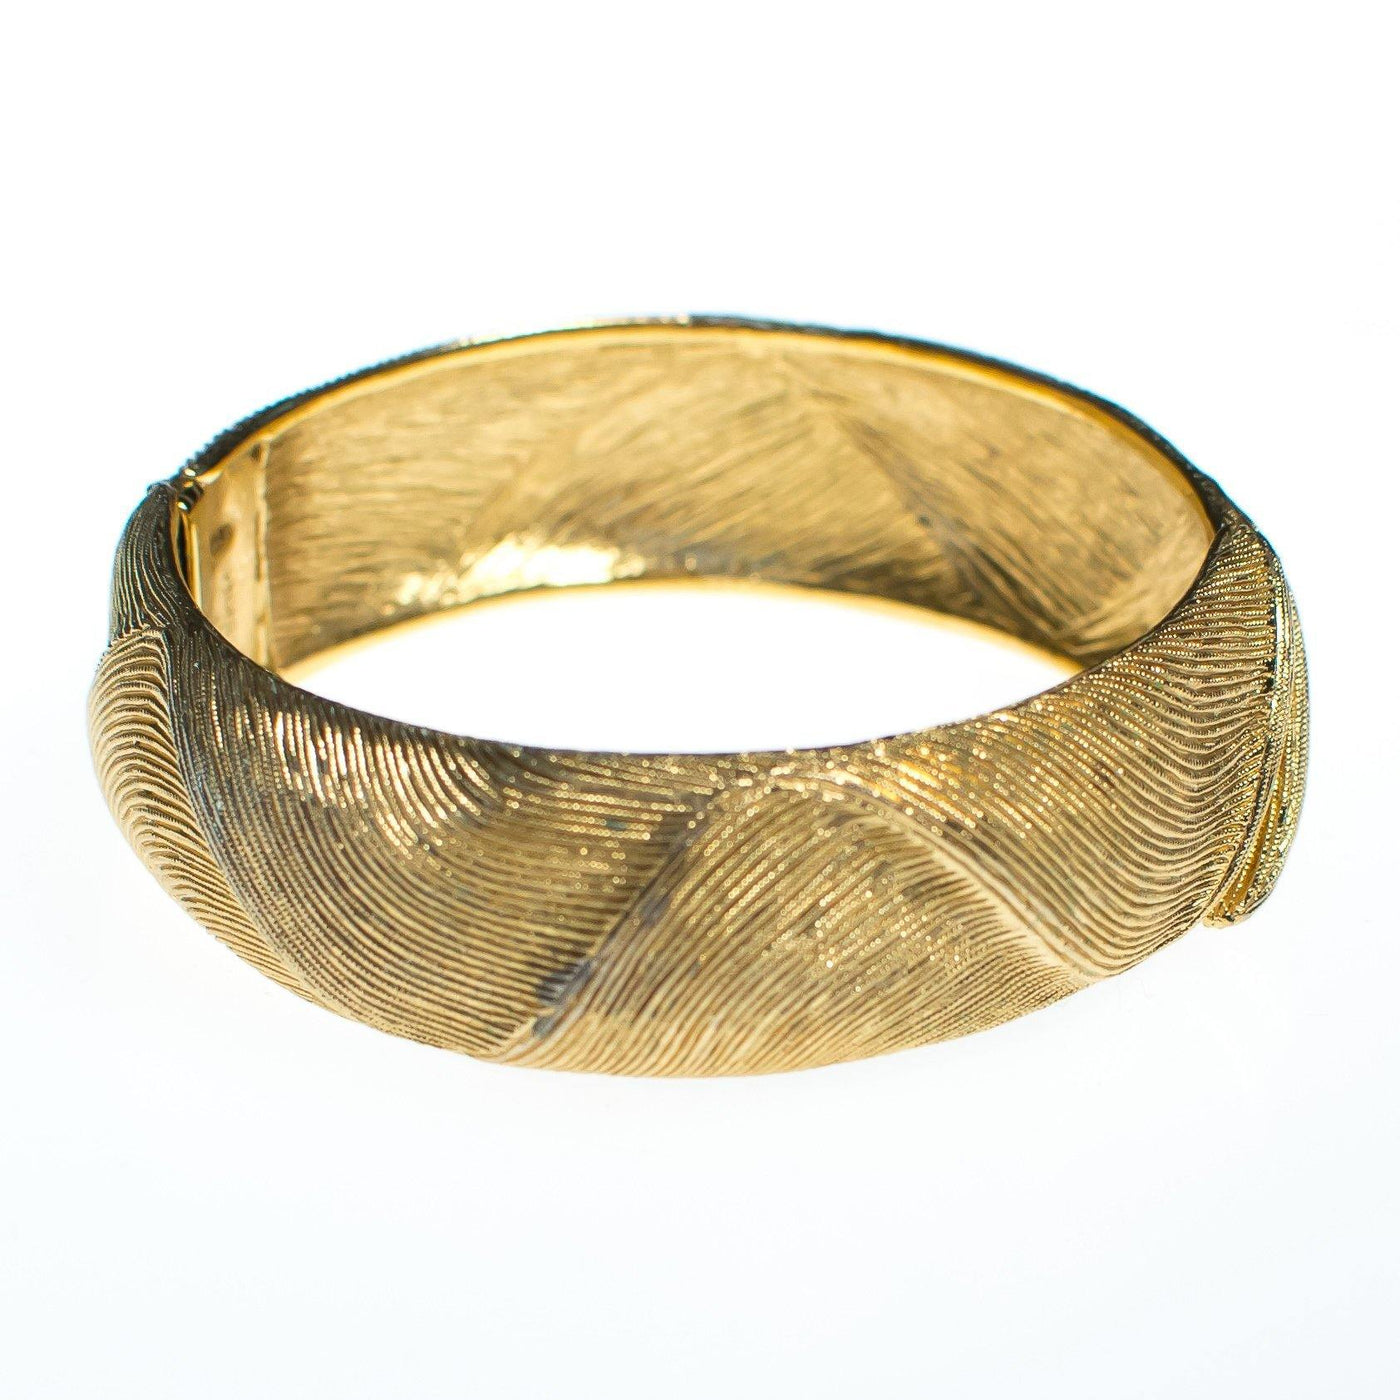 d1145770ad4ca Vintage Monet Brushed Textured Gold Bangle Bracelet - Vintage Meet ...